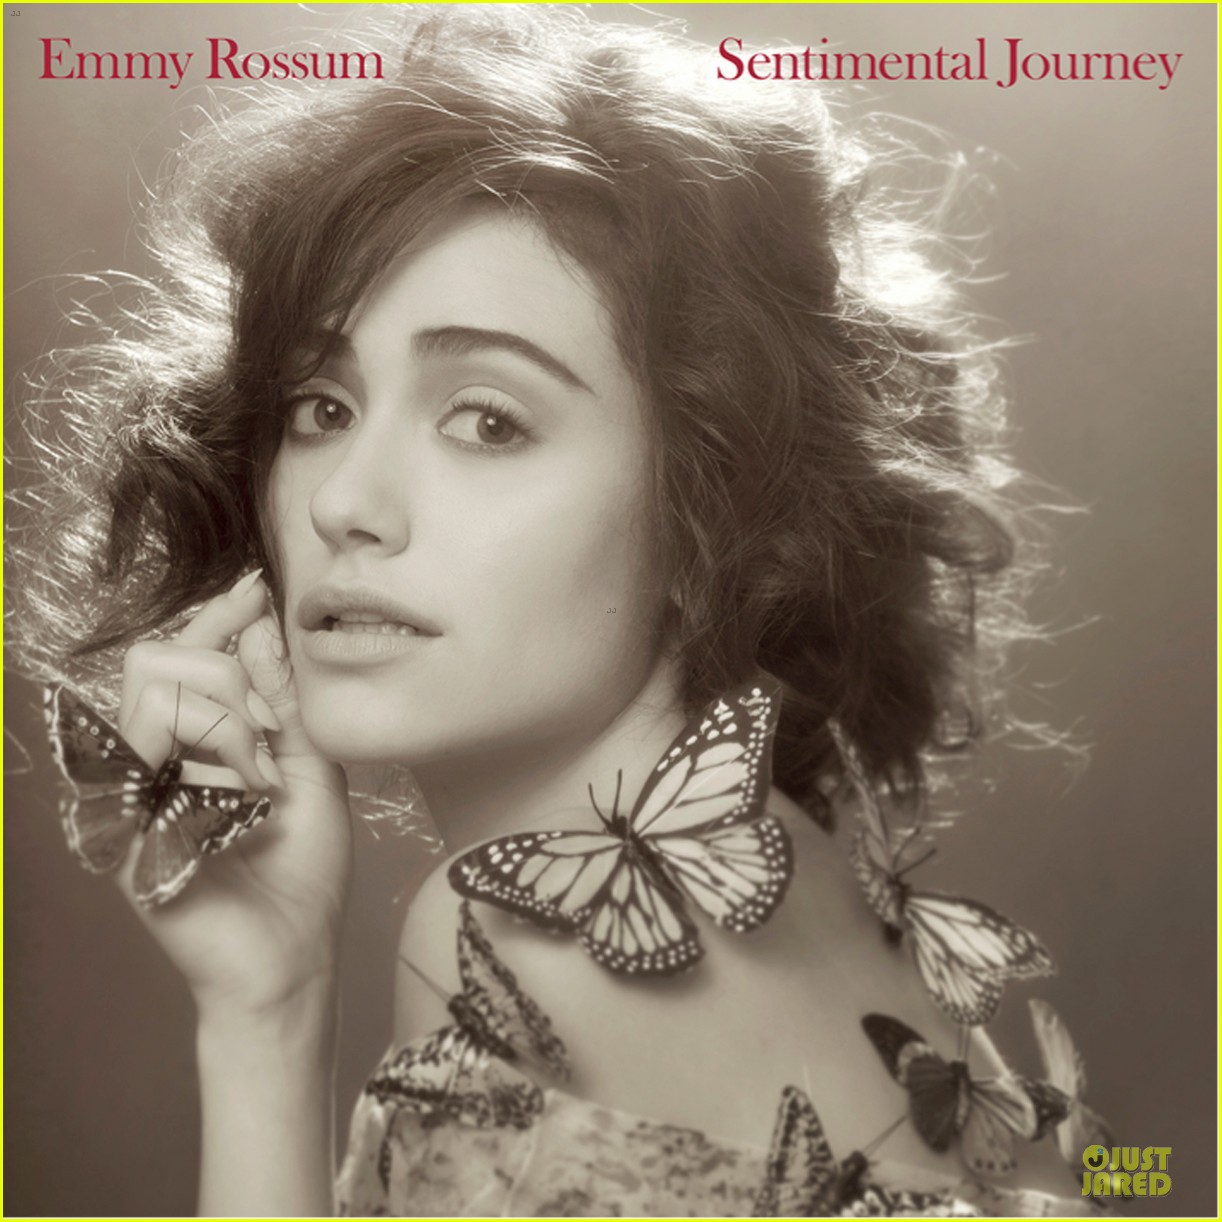 emmy rossum sentimental journey album release 01